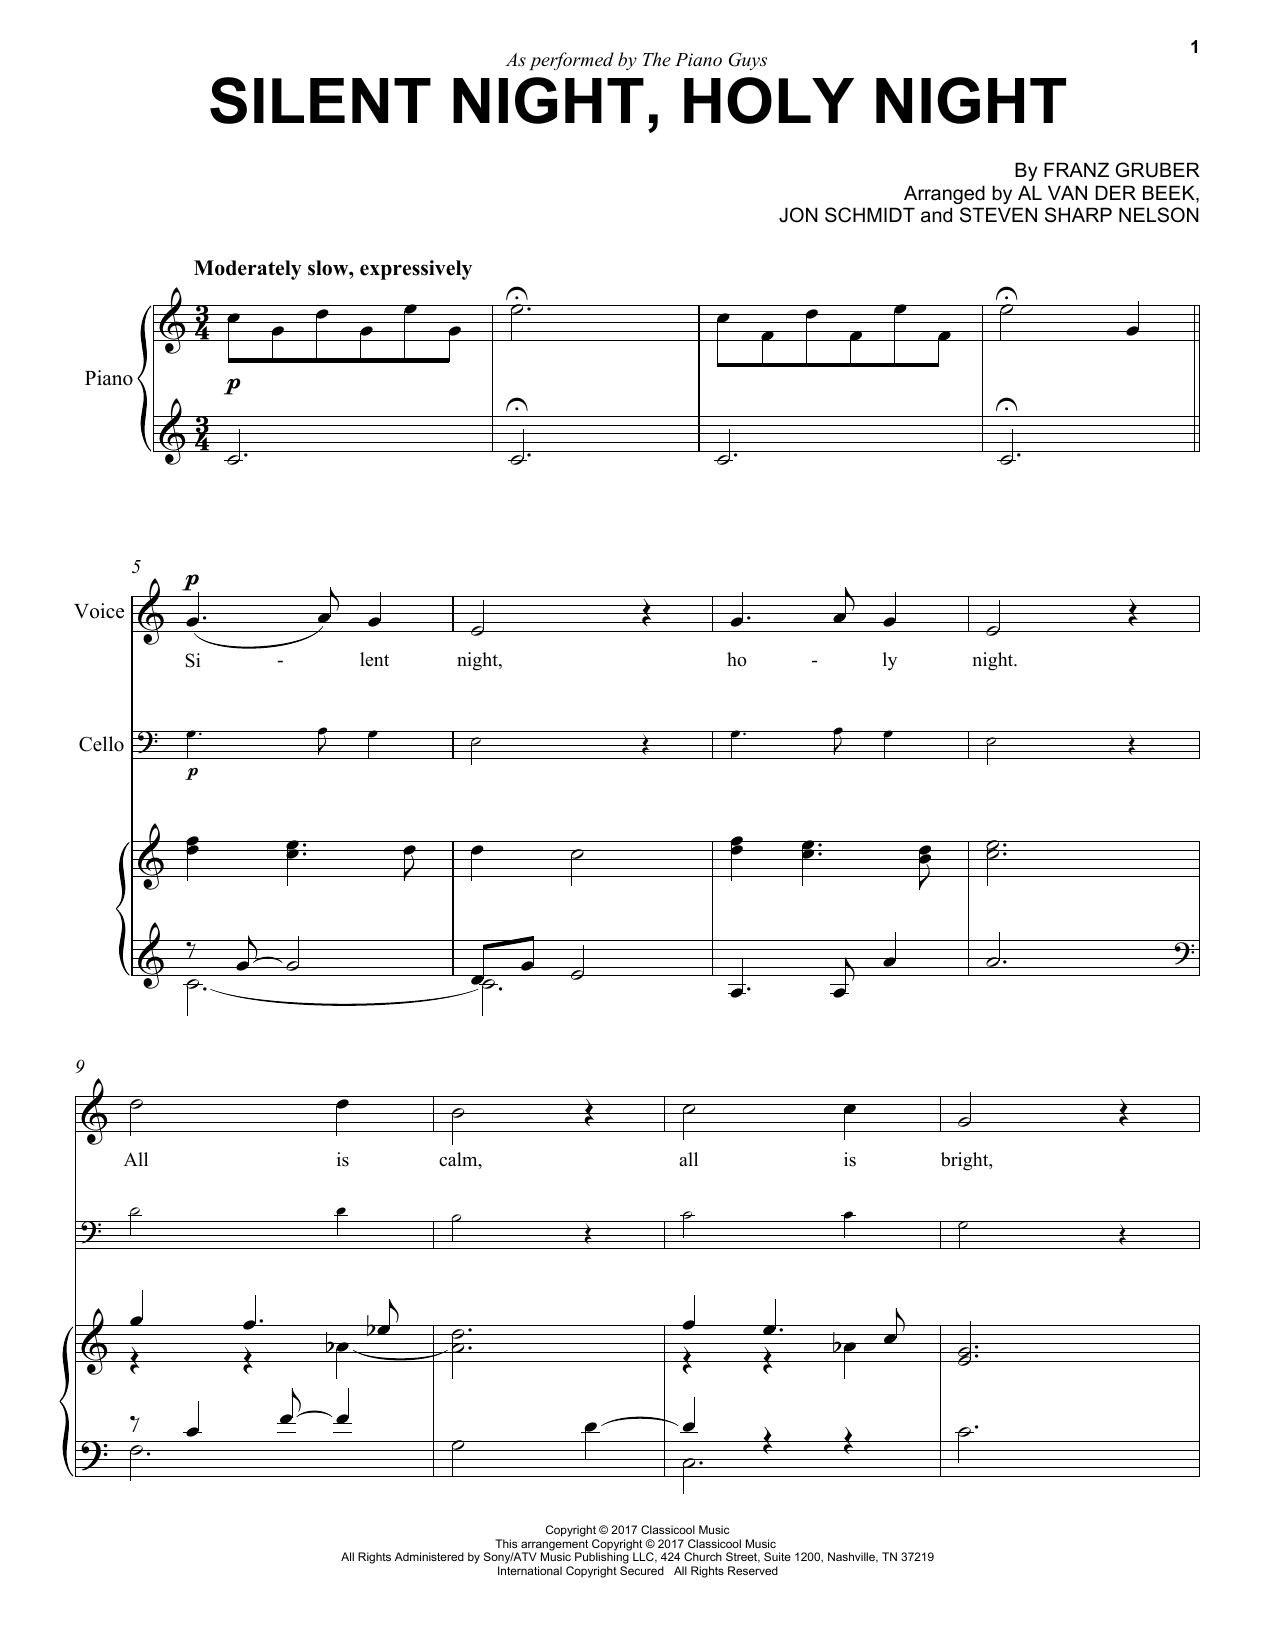 Download The Piano Guys 'Silent Night, Holy Night' Digital Sheet Music Notes & Chords and start playing in minutes